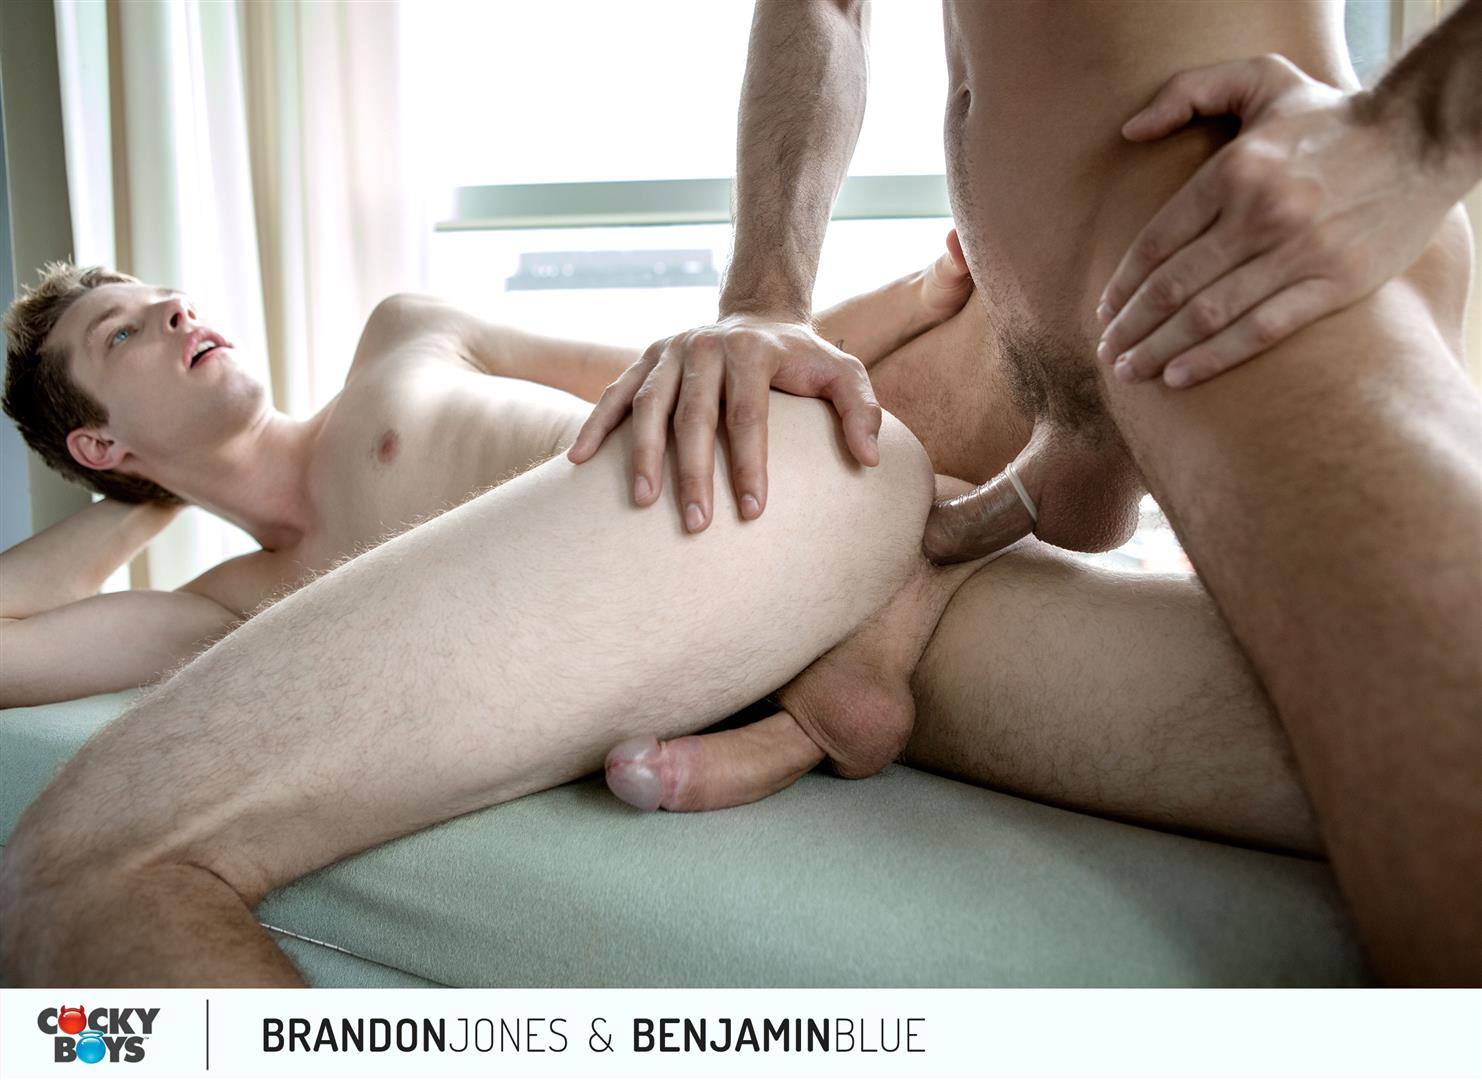 Cockyboys-Benjamin-Blue-and-Brandon-Jones-Flip-Flop-Fuck-Amateur-Gay-Porn-20 Cockyboys: Benjamin Blue Tops Brandon Jones For The First Time